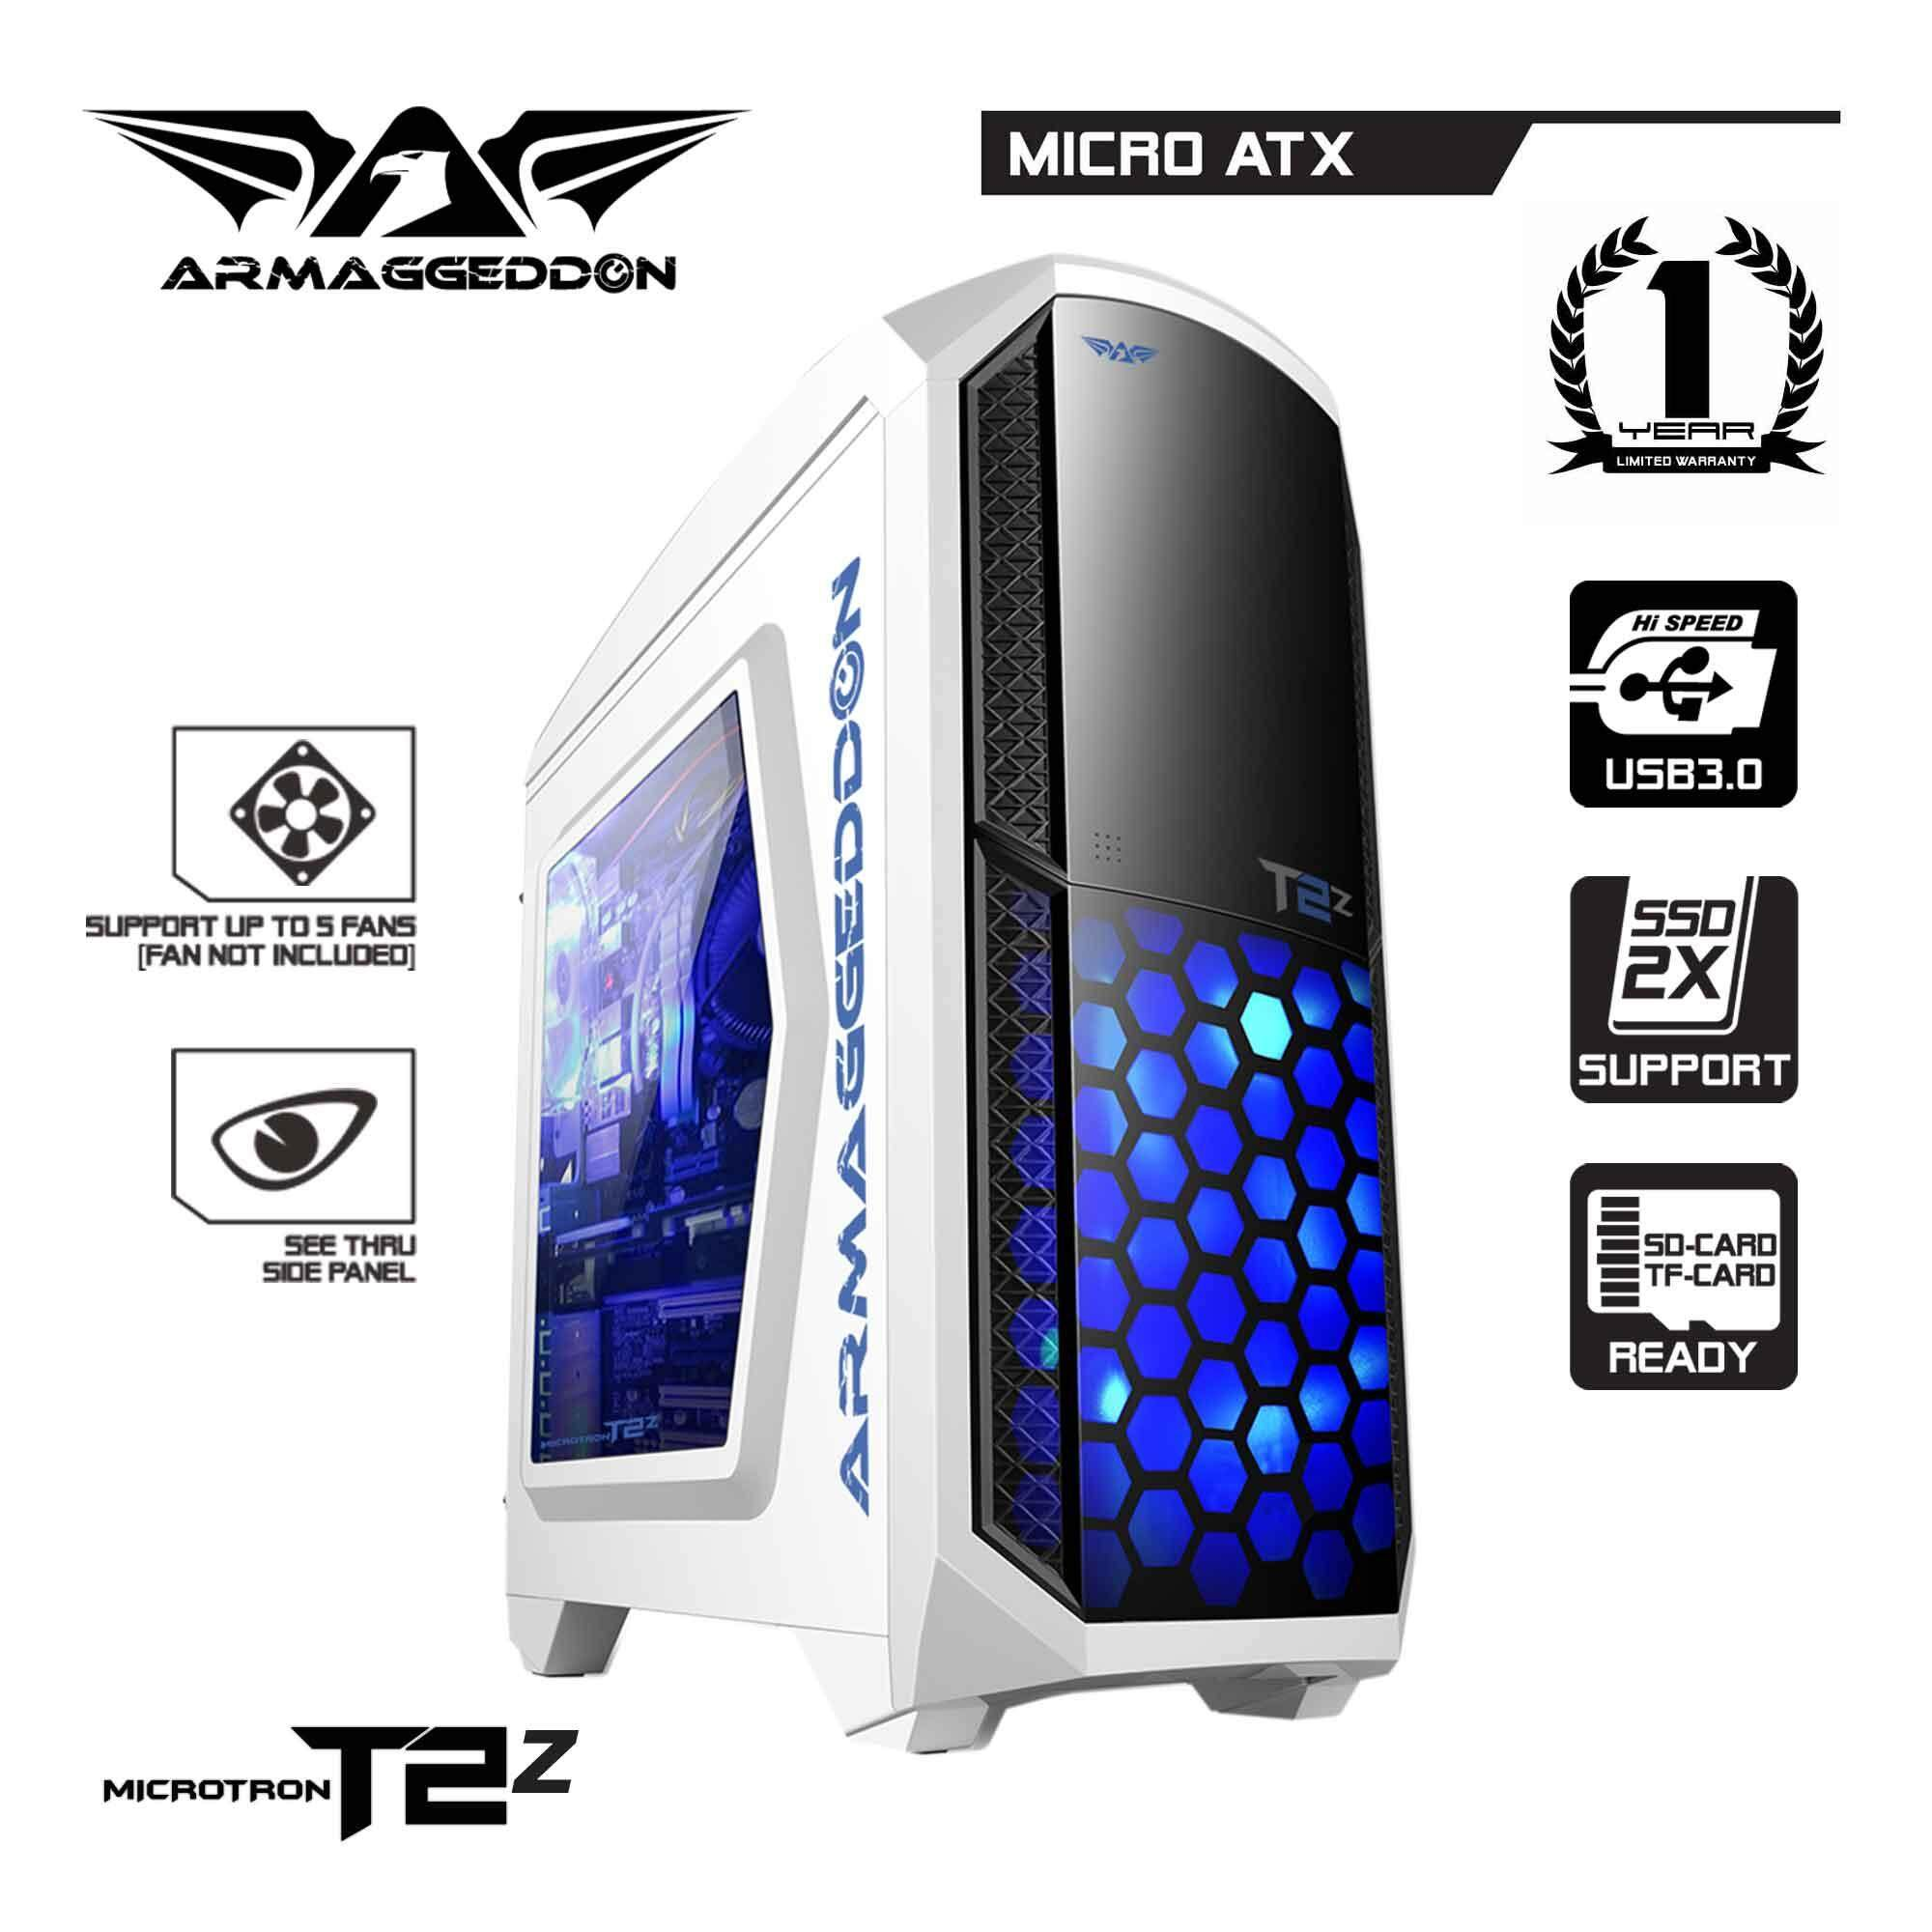 (CLEARANCE) Armaggeddon Microtron T2z Micro ATX Gaming PC Chassis - Support SSD and High End Graphic Card Malaysia